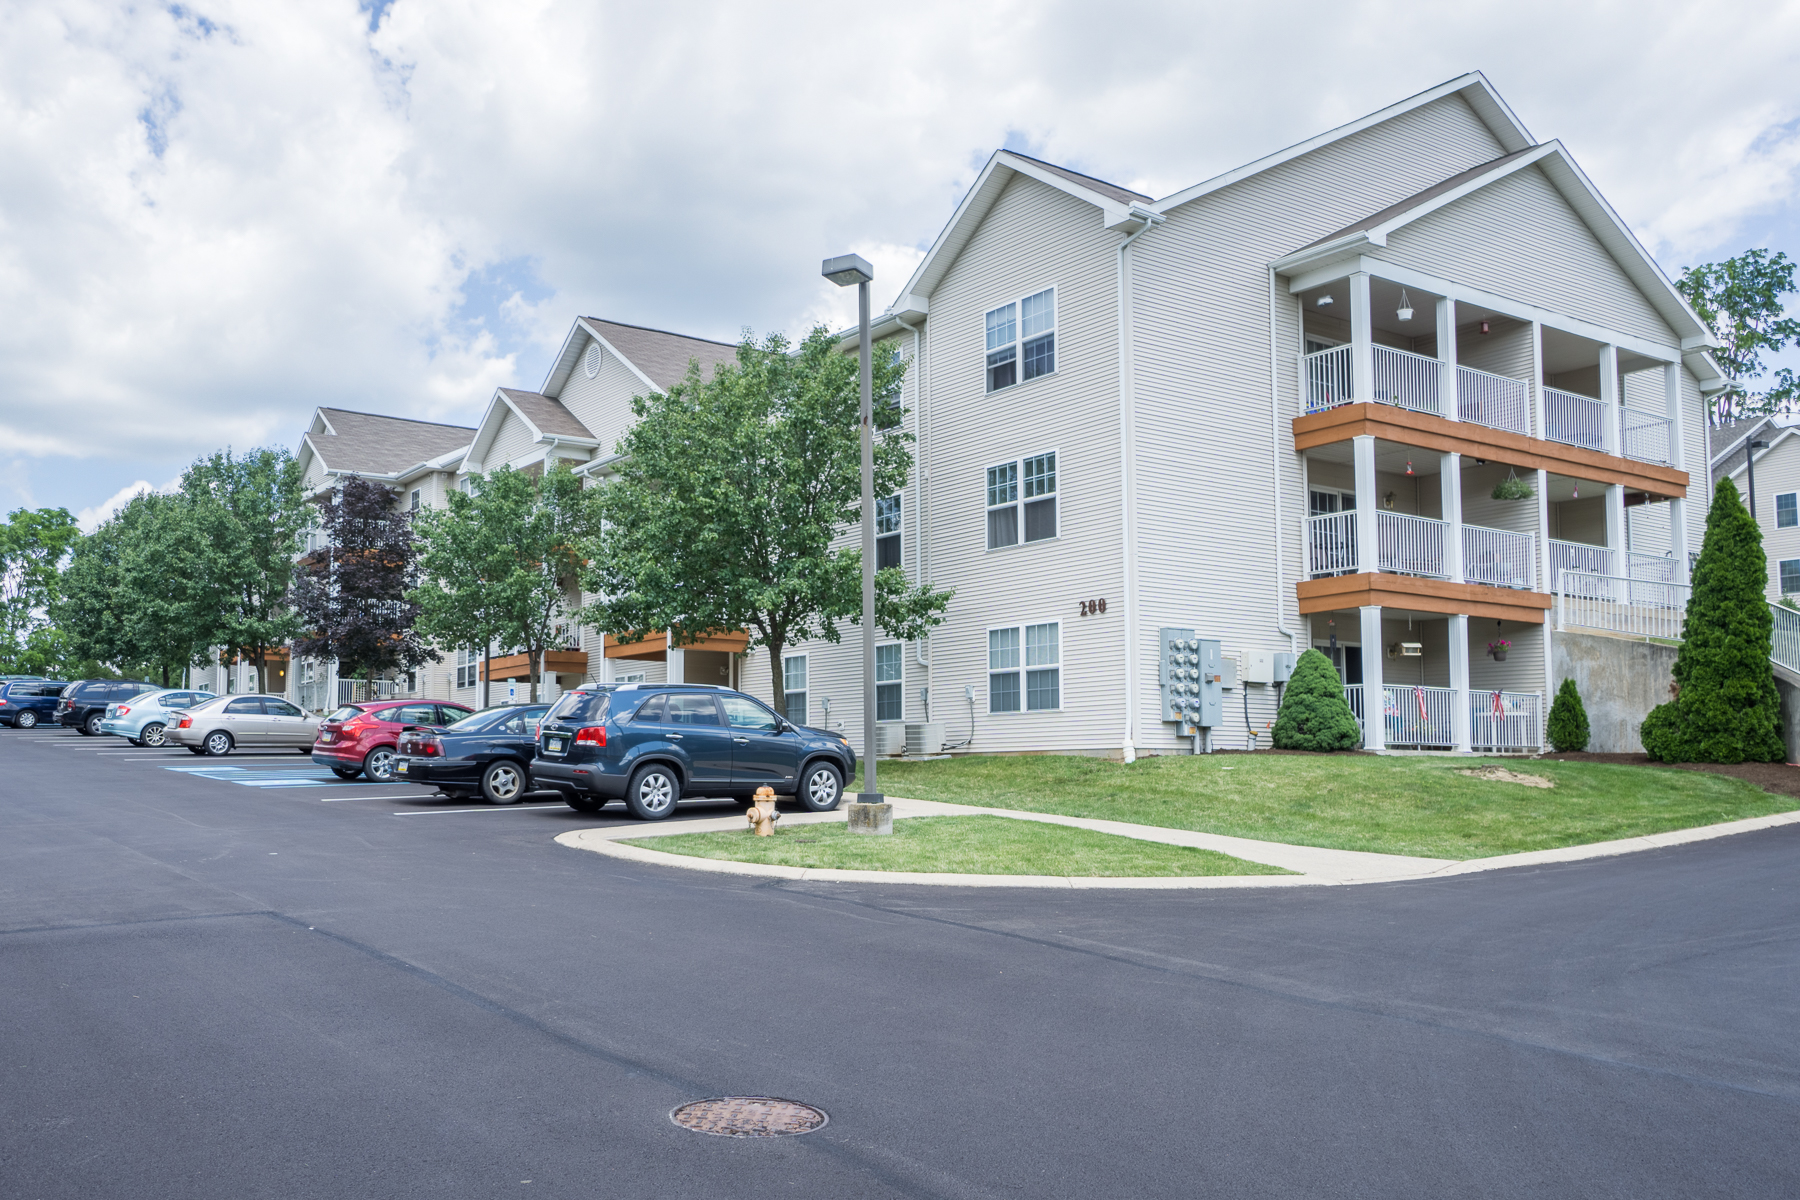 Image of Pleasant Hills Apartments in Pleasant Gap, Pennsylvania